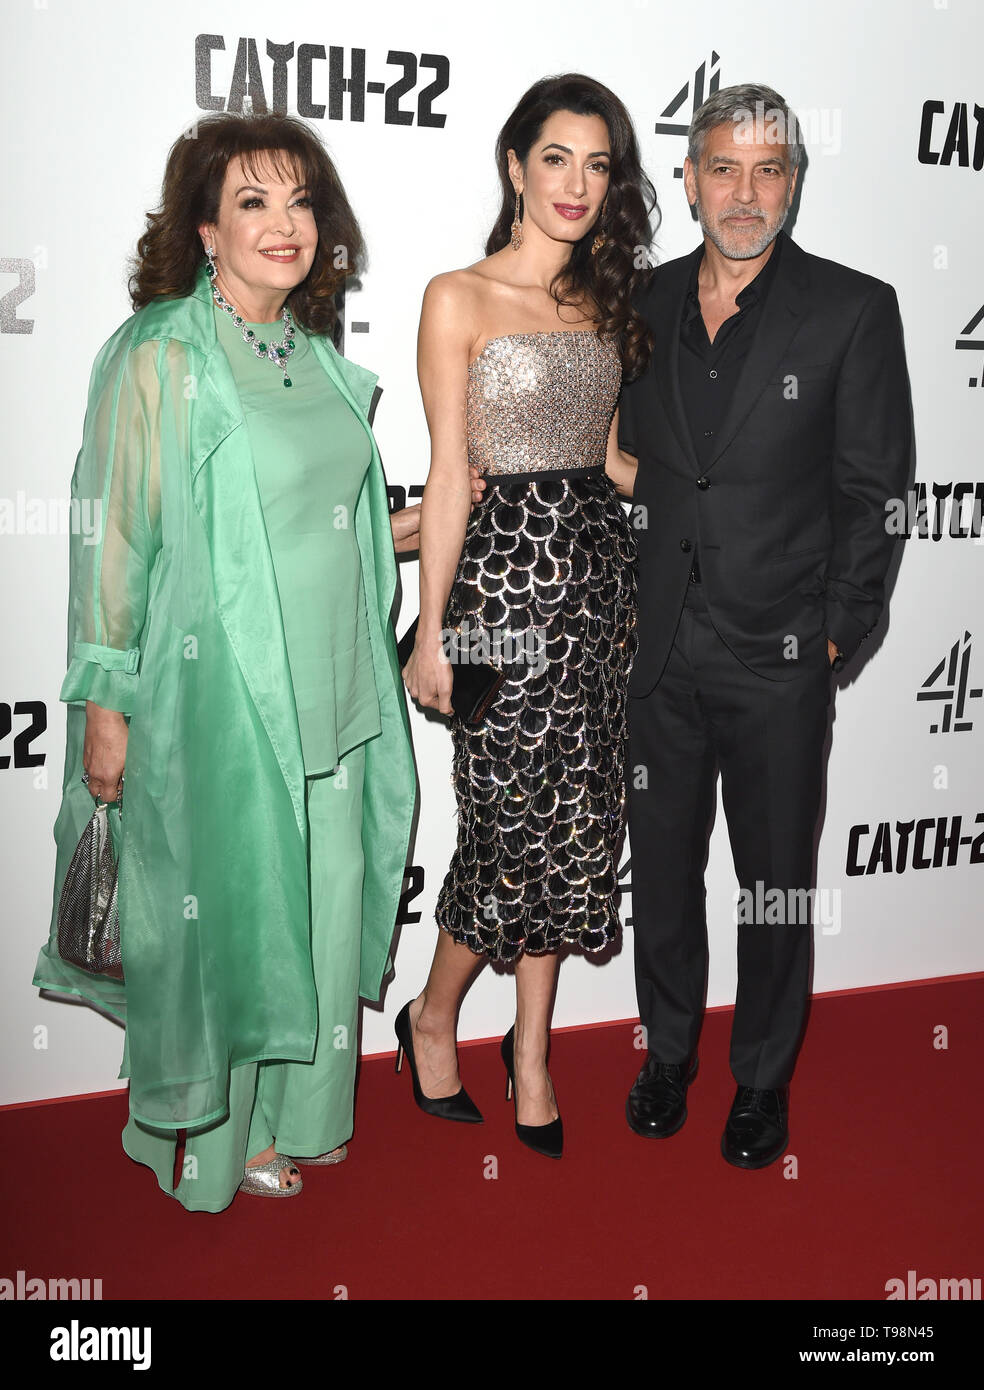 Photo Must Be Credited ©Alpha Press 079965 15/05/2019  Baria Alamuddin and Amal and George Clooney  Catch 22 UK Premiere Vue Westfield London - Stock Image